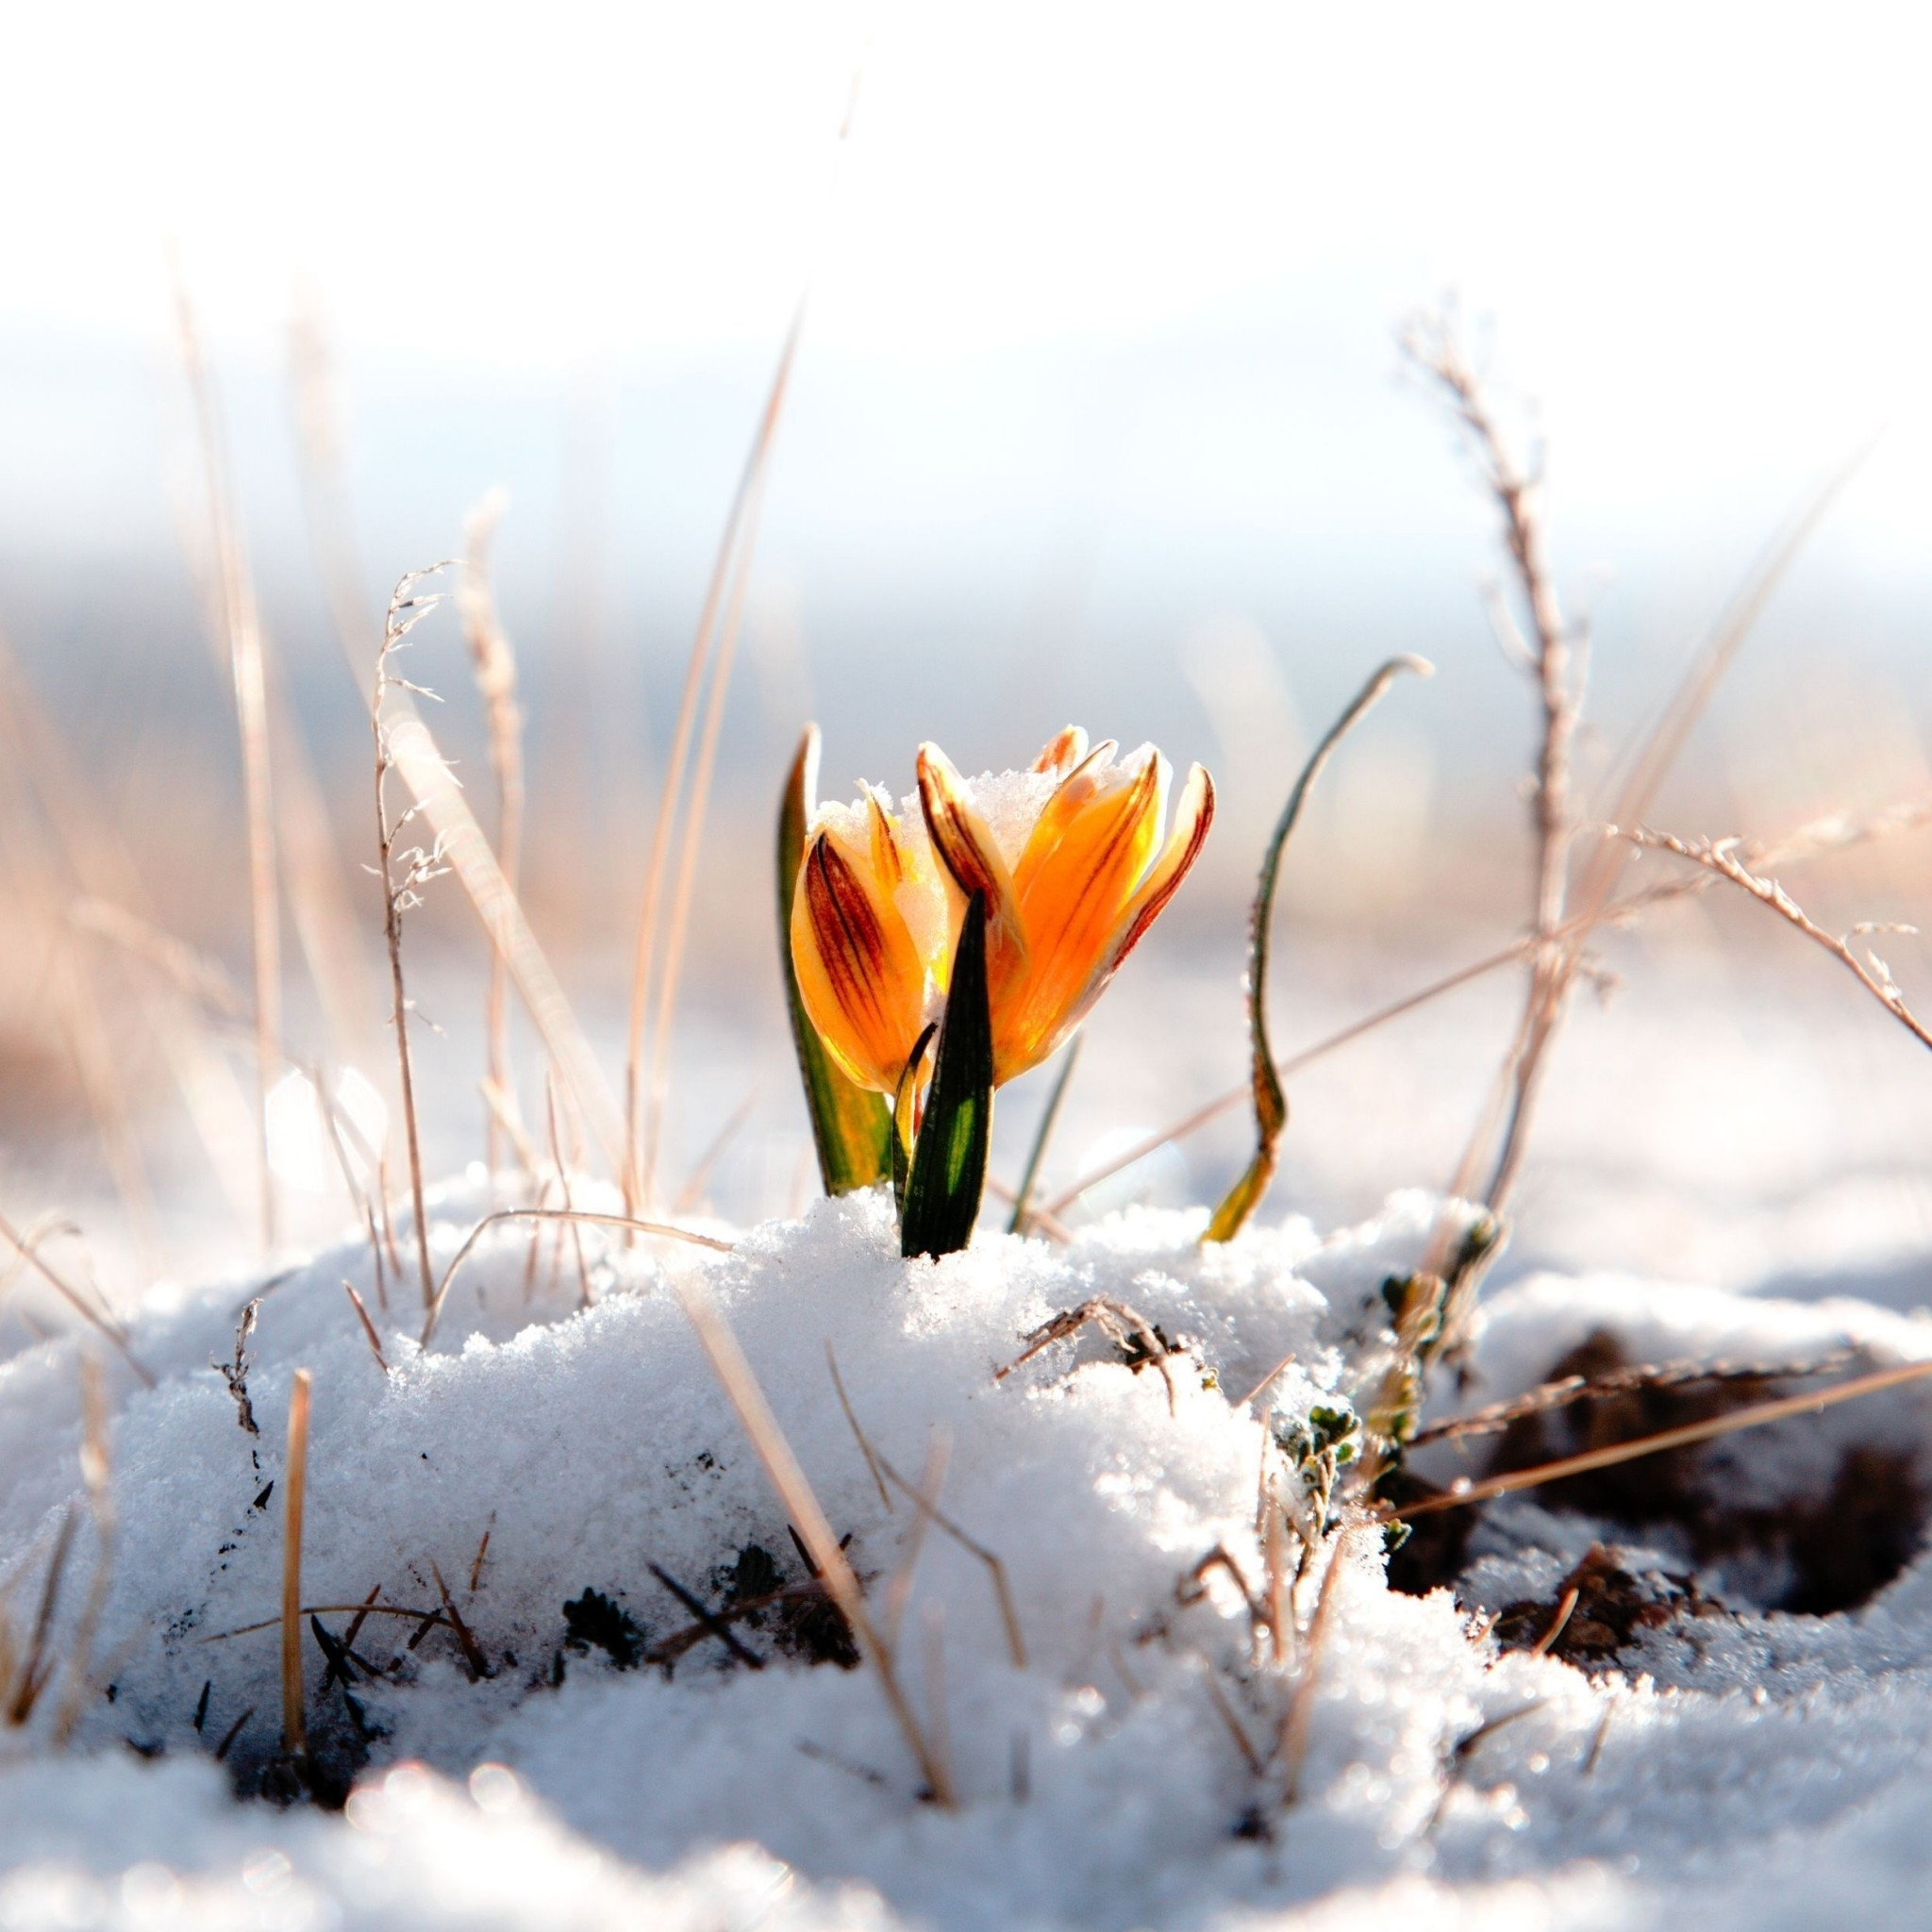 orange flower snow - tap to see more beautiful winter snow flowers